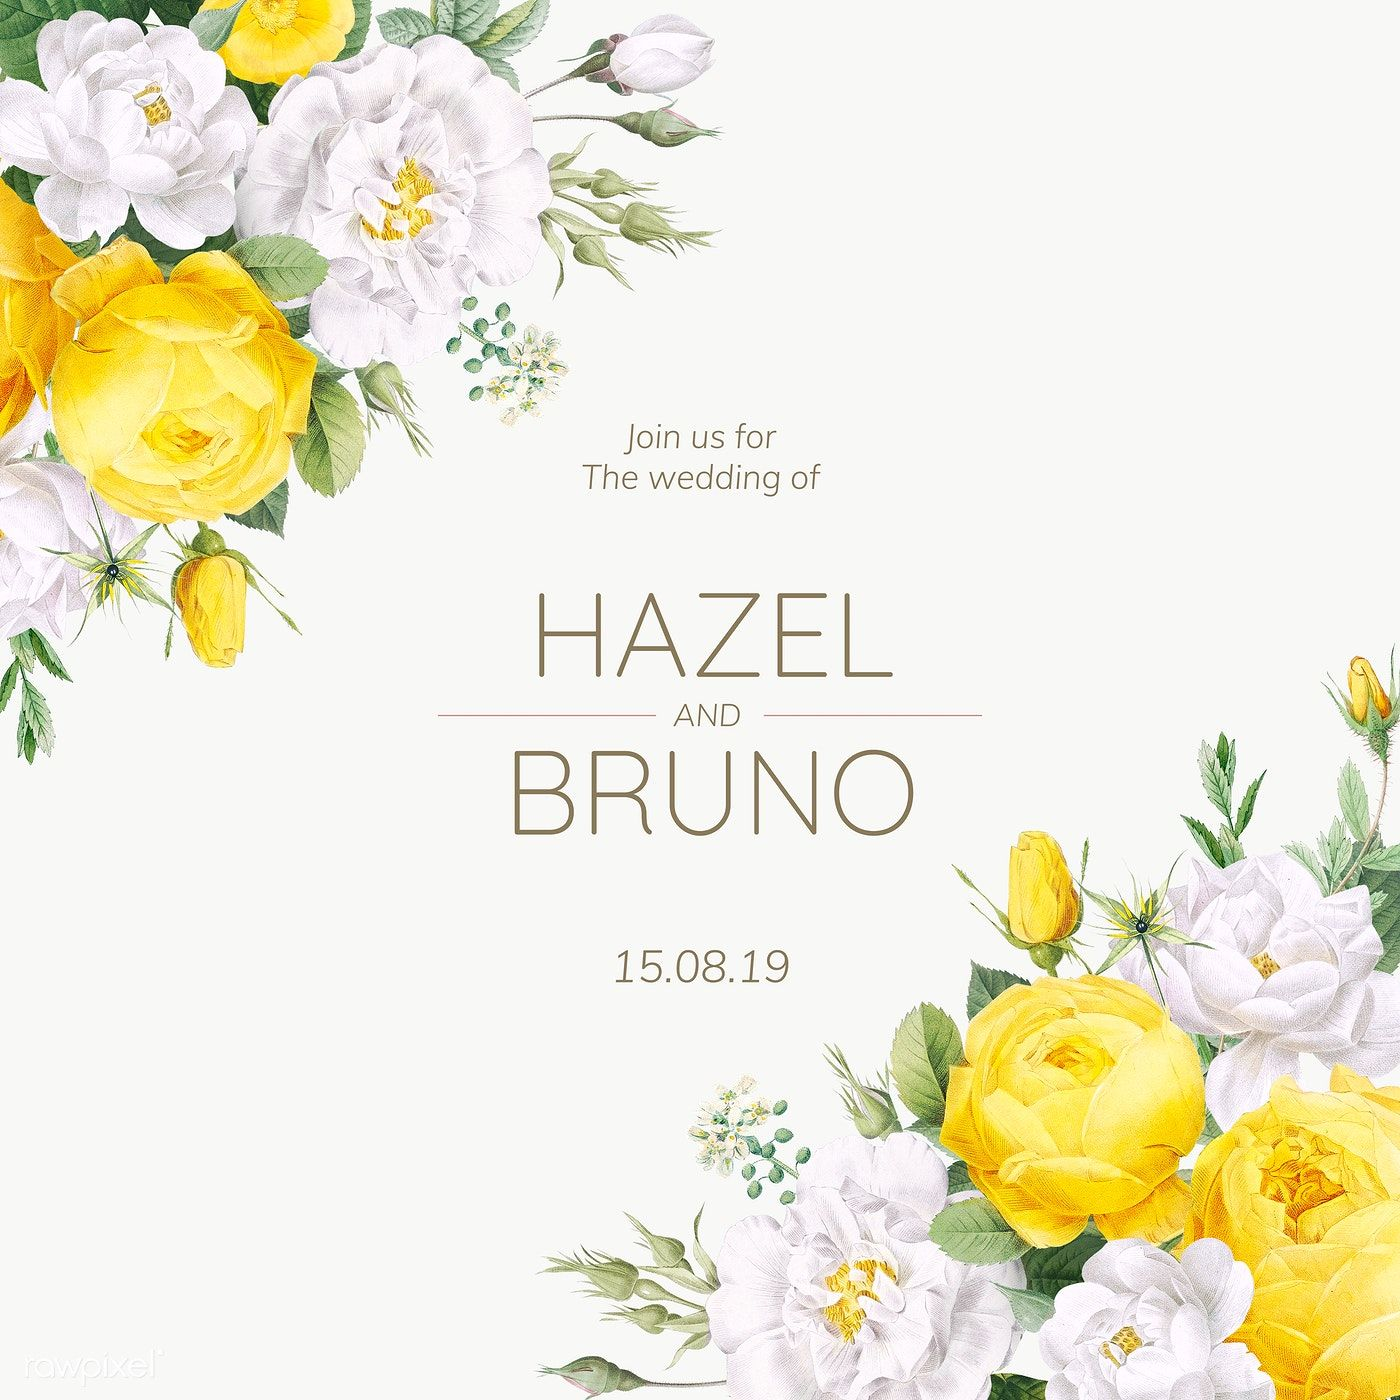 Download Premium Png Of Blooming Wedding Invitation Card Transparent Png In 2020 Floral Wedding Invitation Card Wedding Invitation Cards Wedding Invitation Design